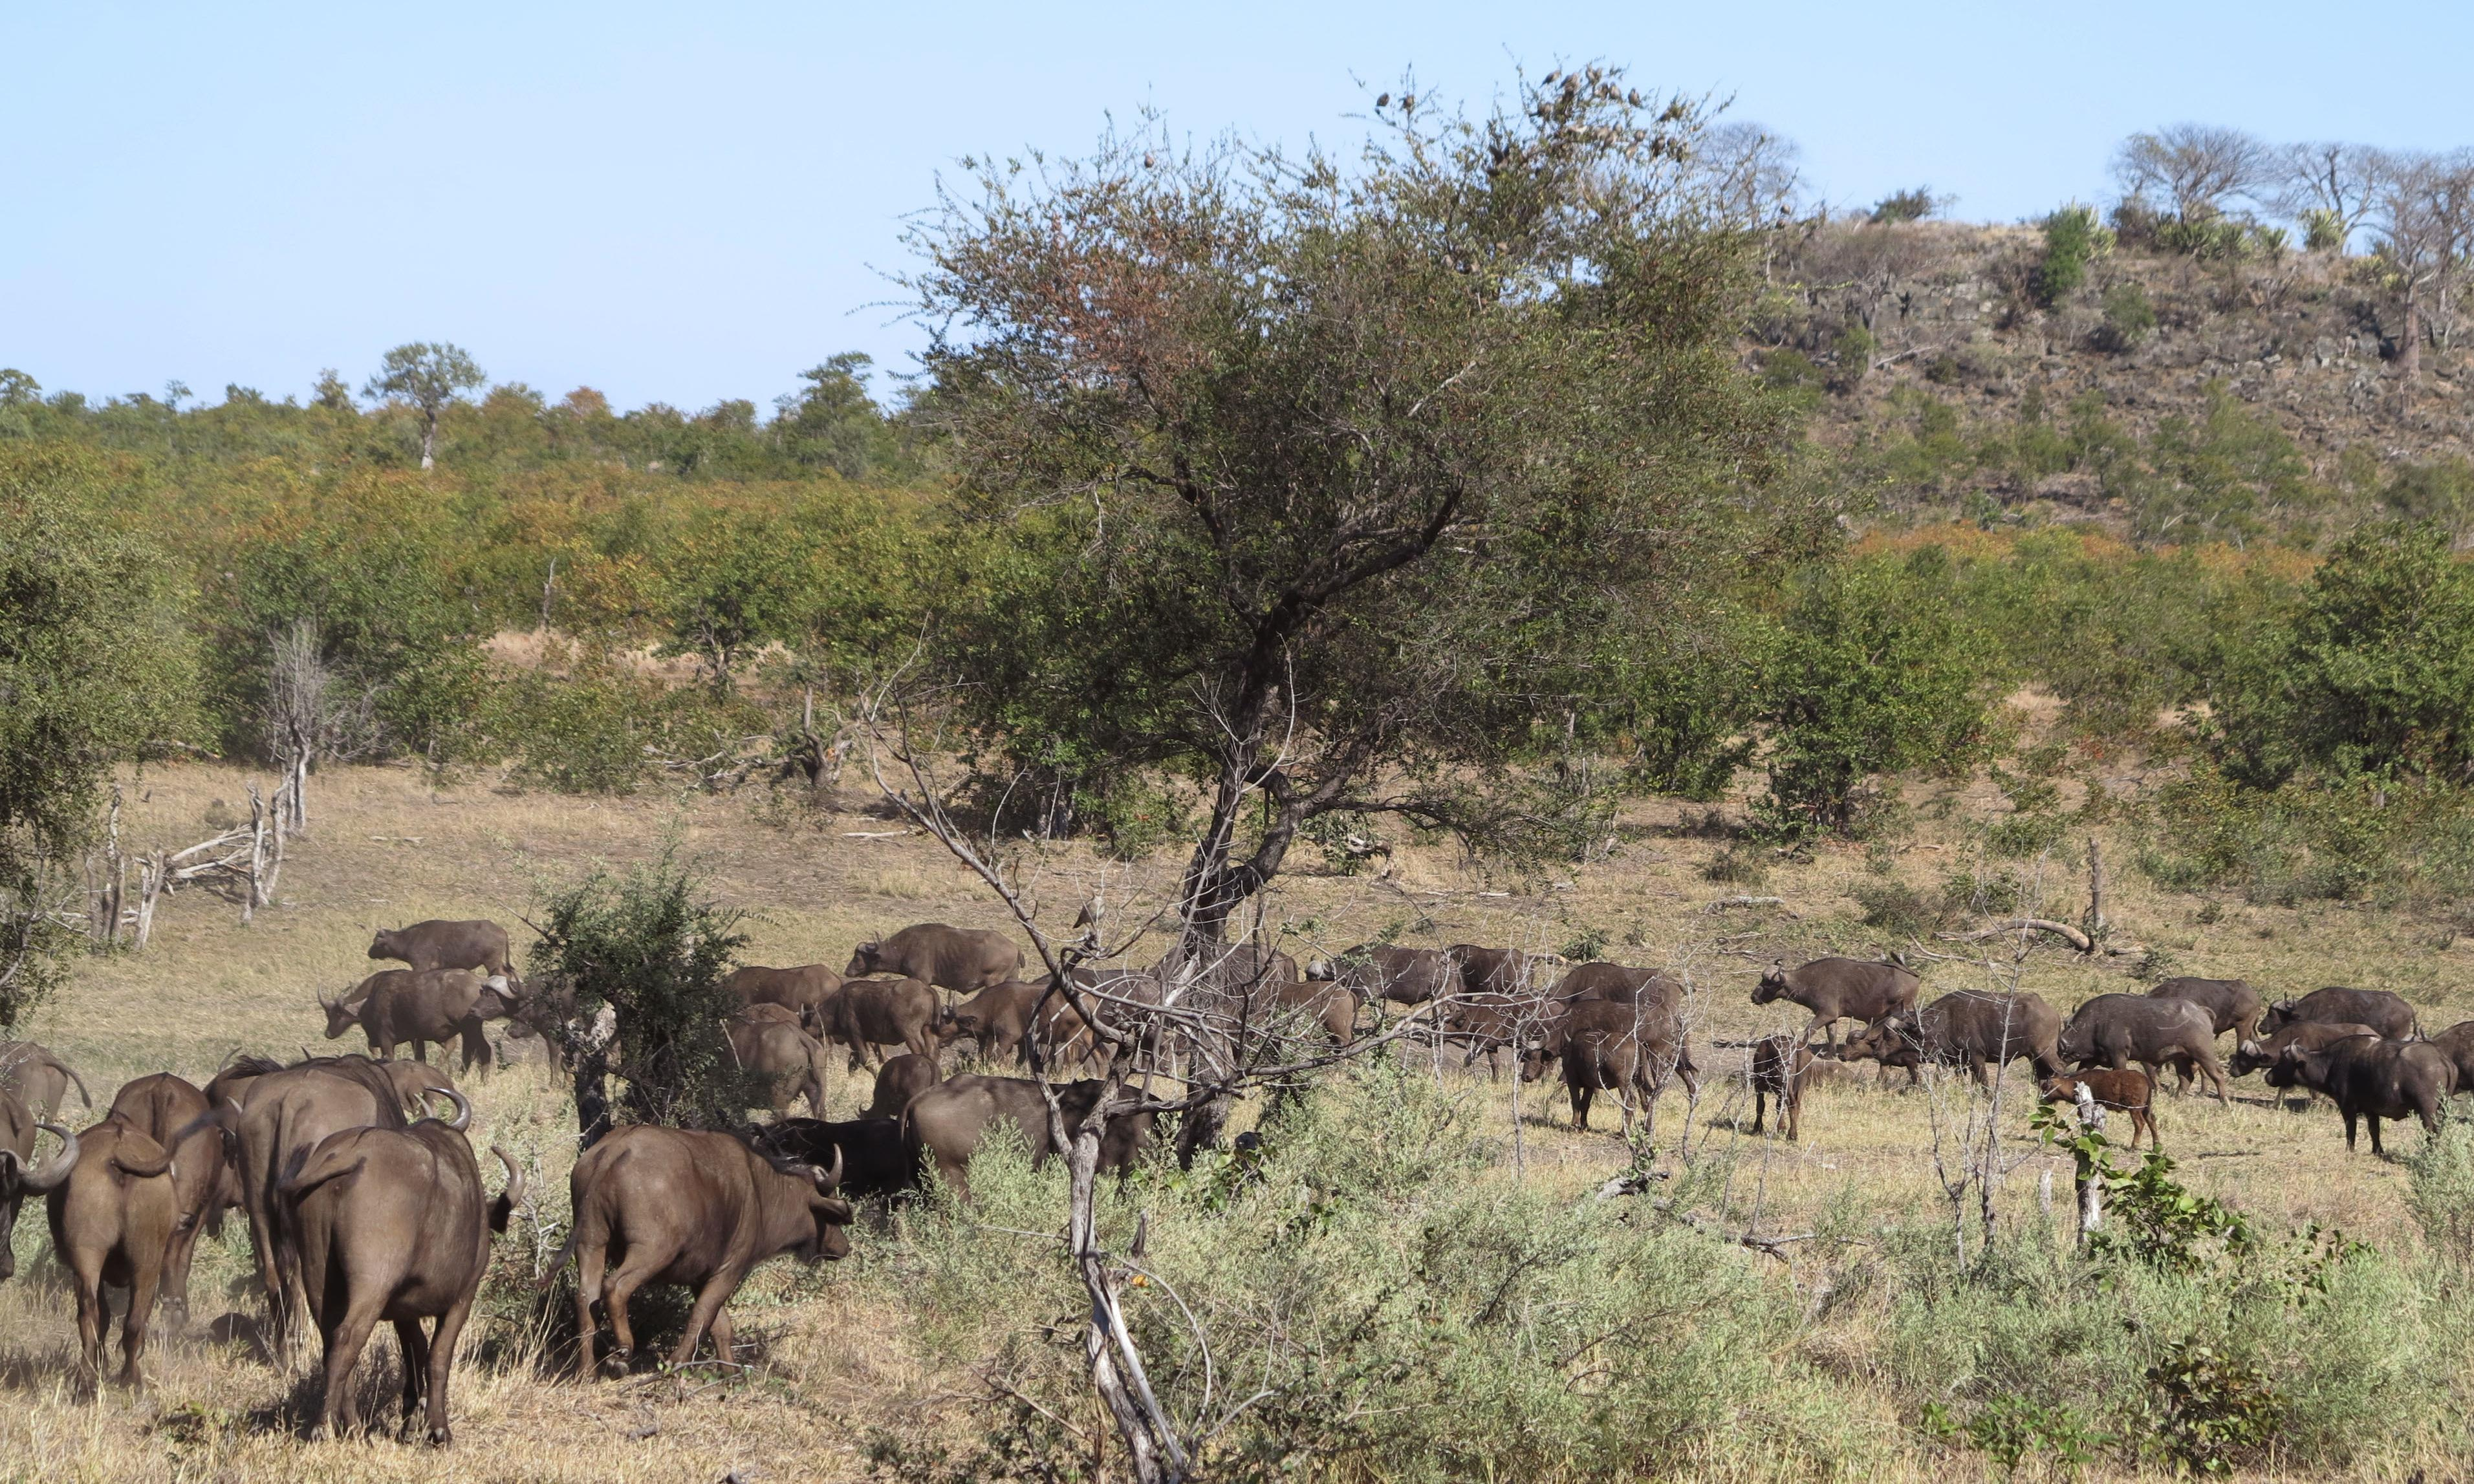 South African national park to kill animals in response to severe drought